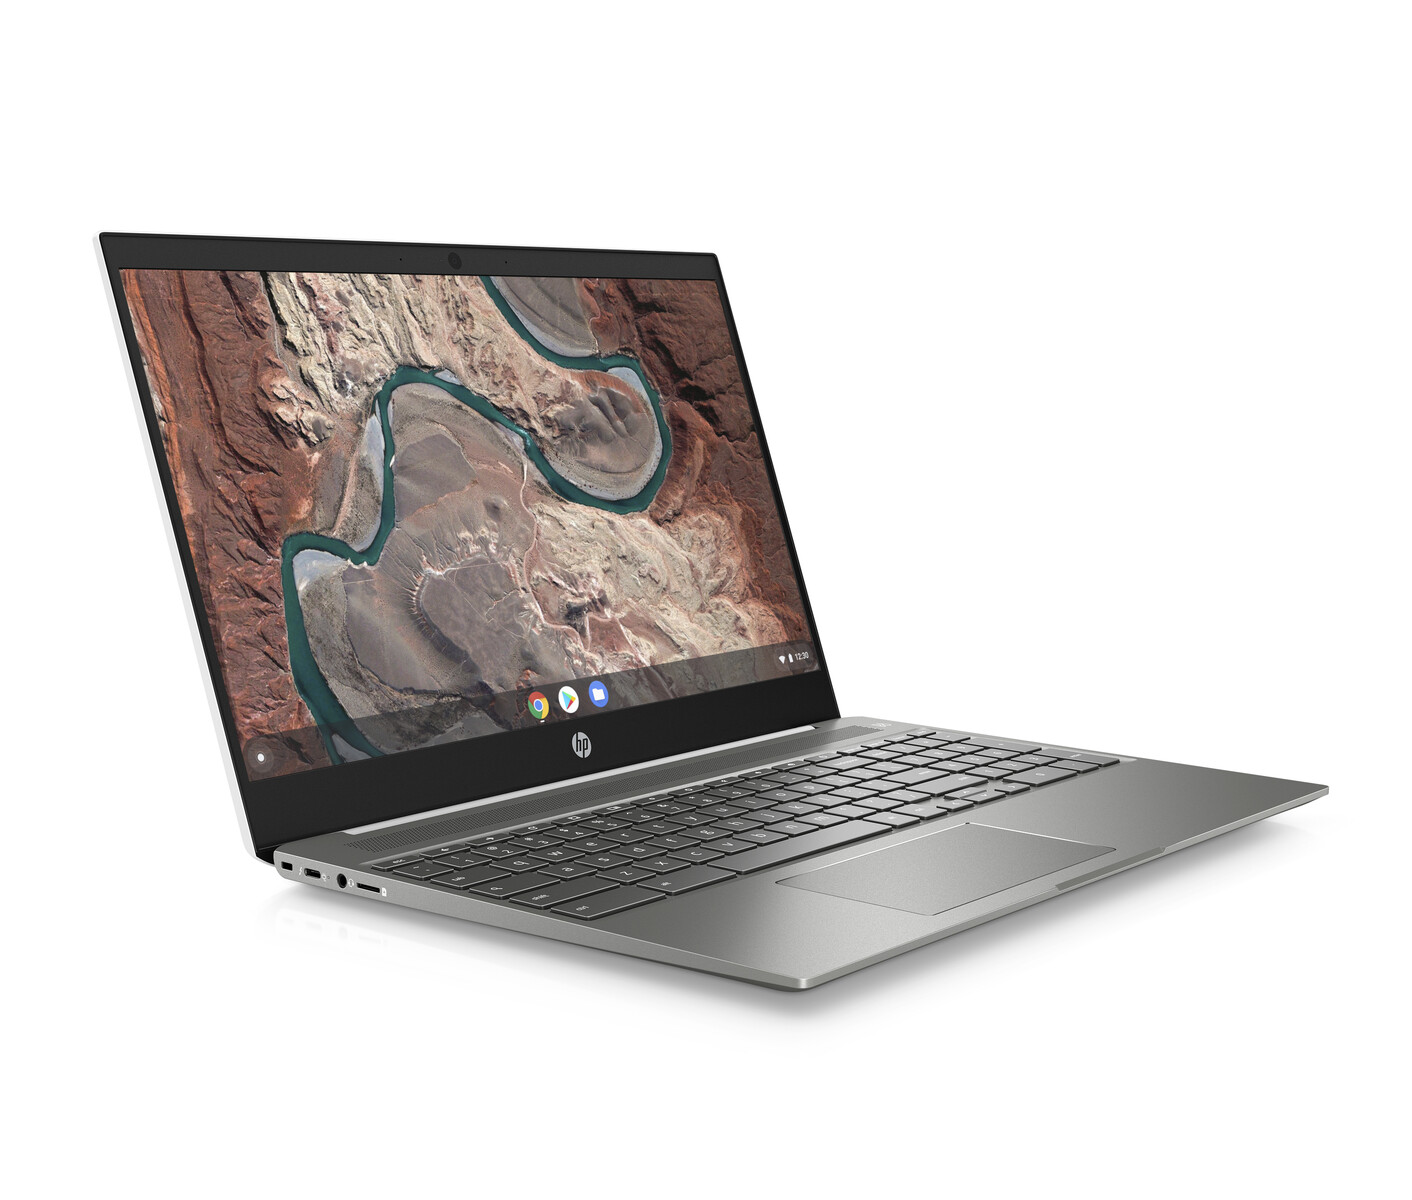 HP Chromebook 15 now available for $449 with Intel Pentium